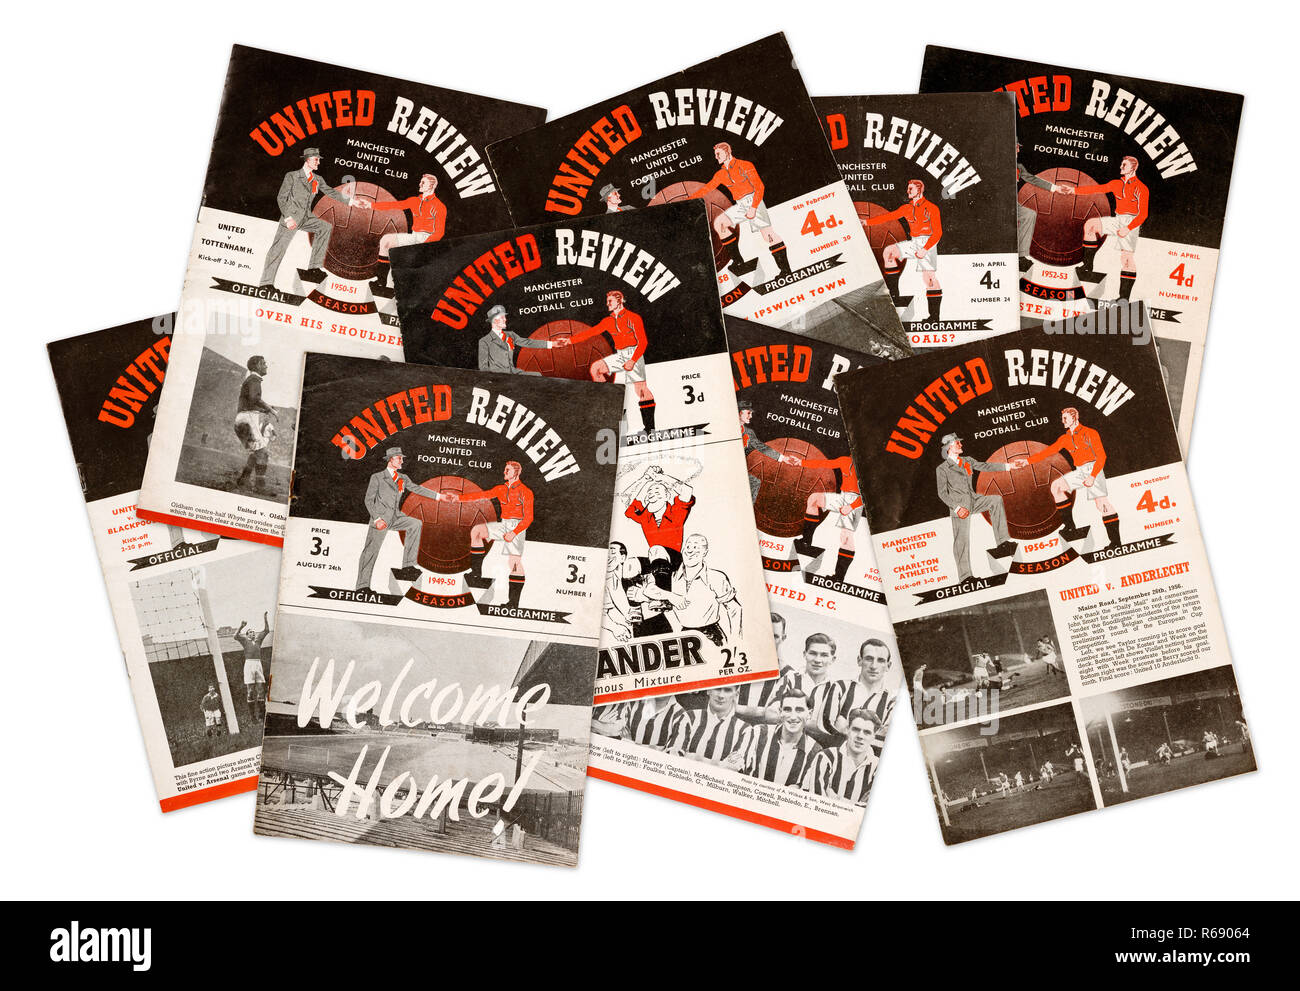 A collection of United Review official programmes for Manchester United Football Club from the 1940's and 1950's (digital composite) - Stock Image